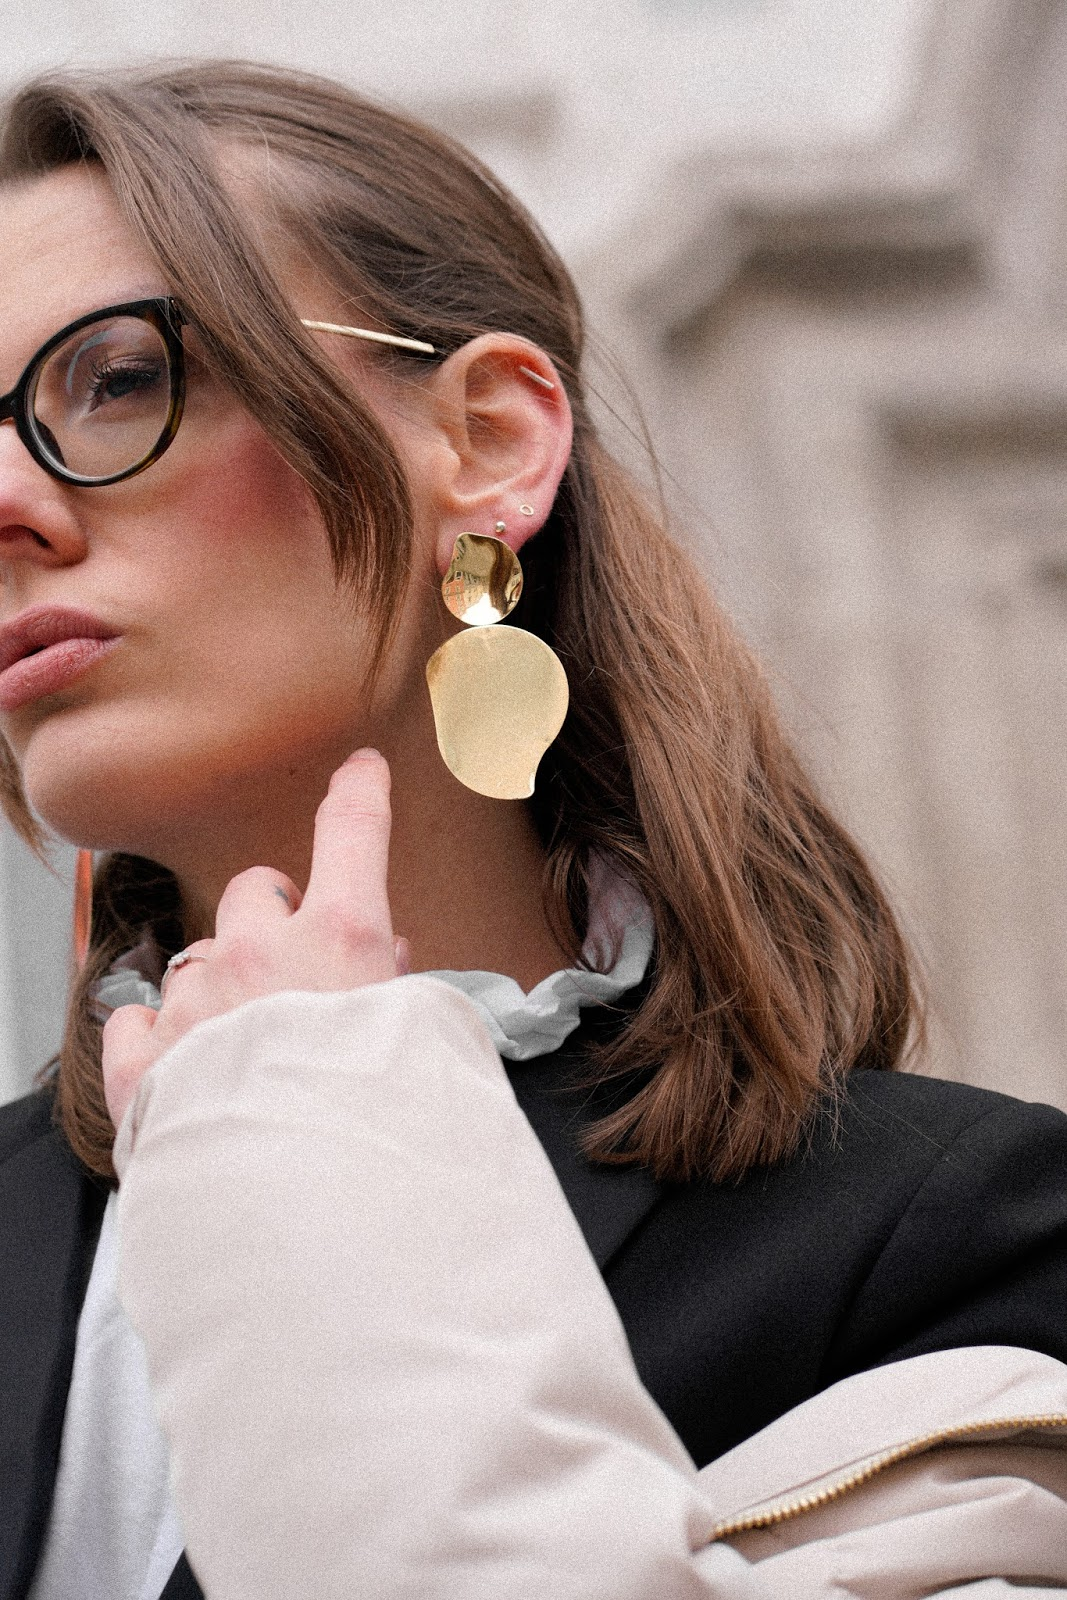 STATEMENT EARRINGS: 7 ways to wear